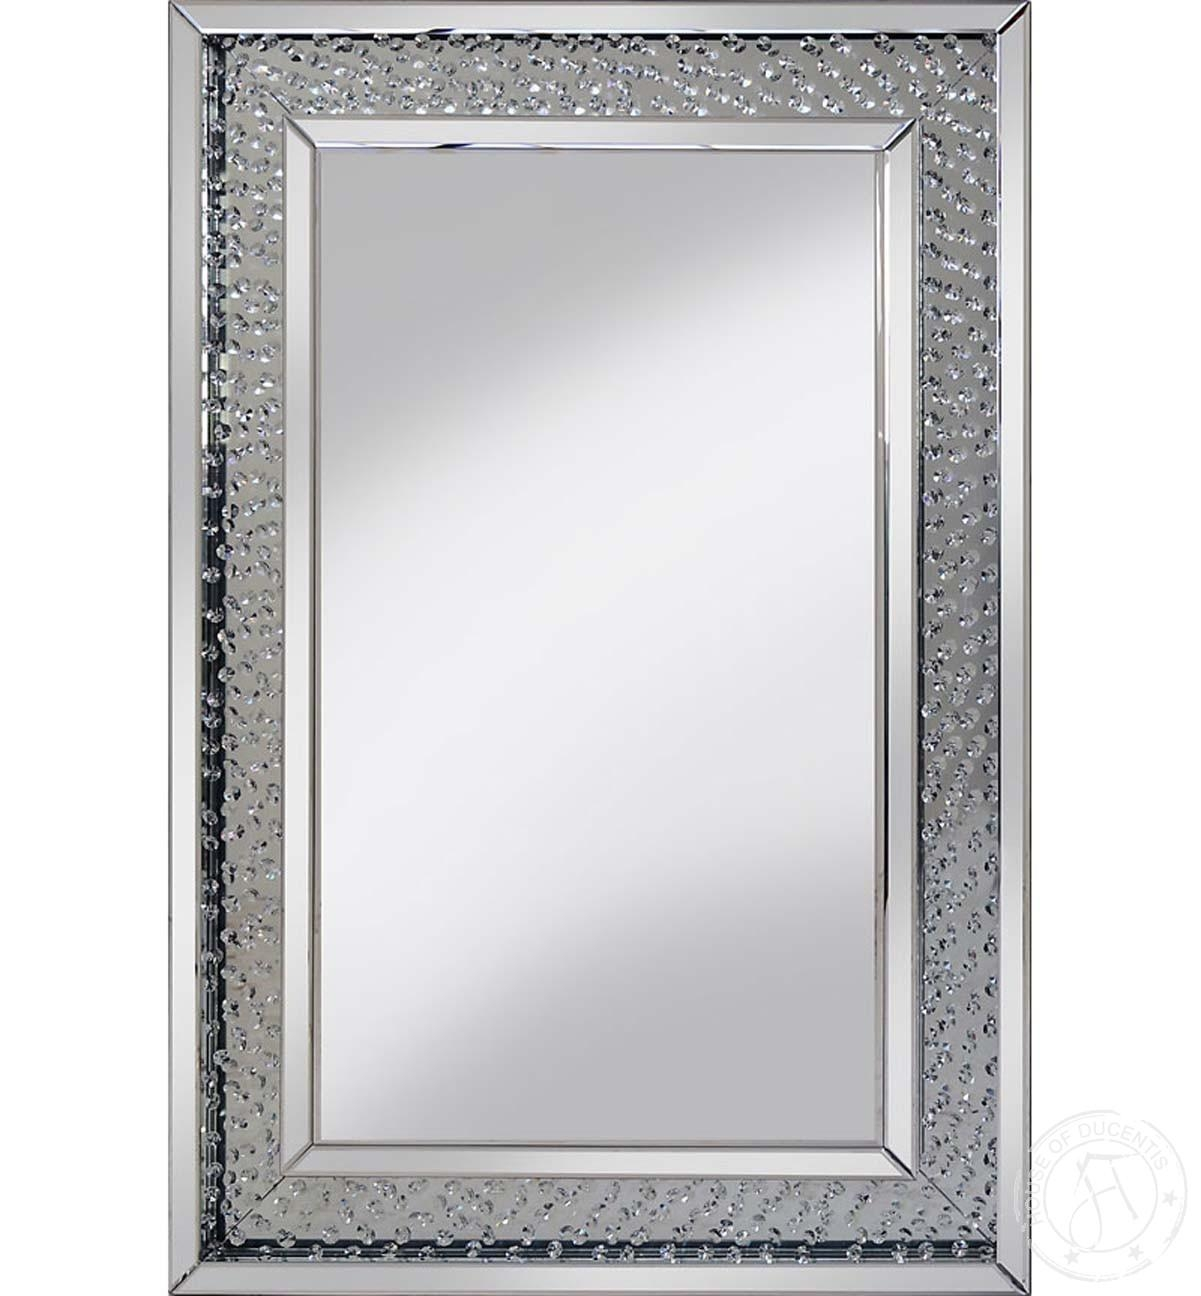 Rhombus Compact Mirror Throughout Mirror With Crystals (Image 15 of 20)